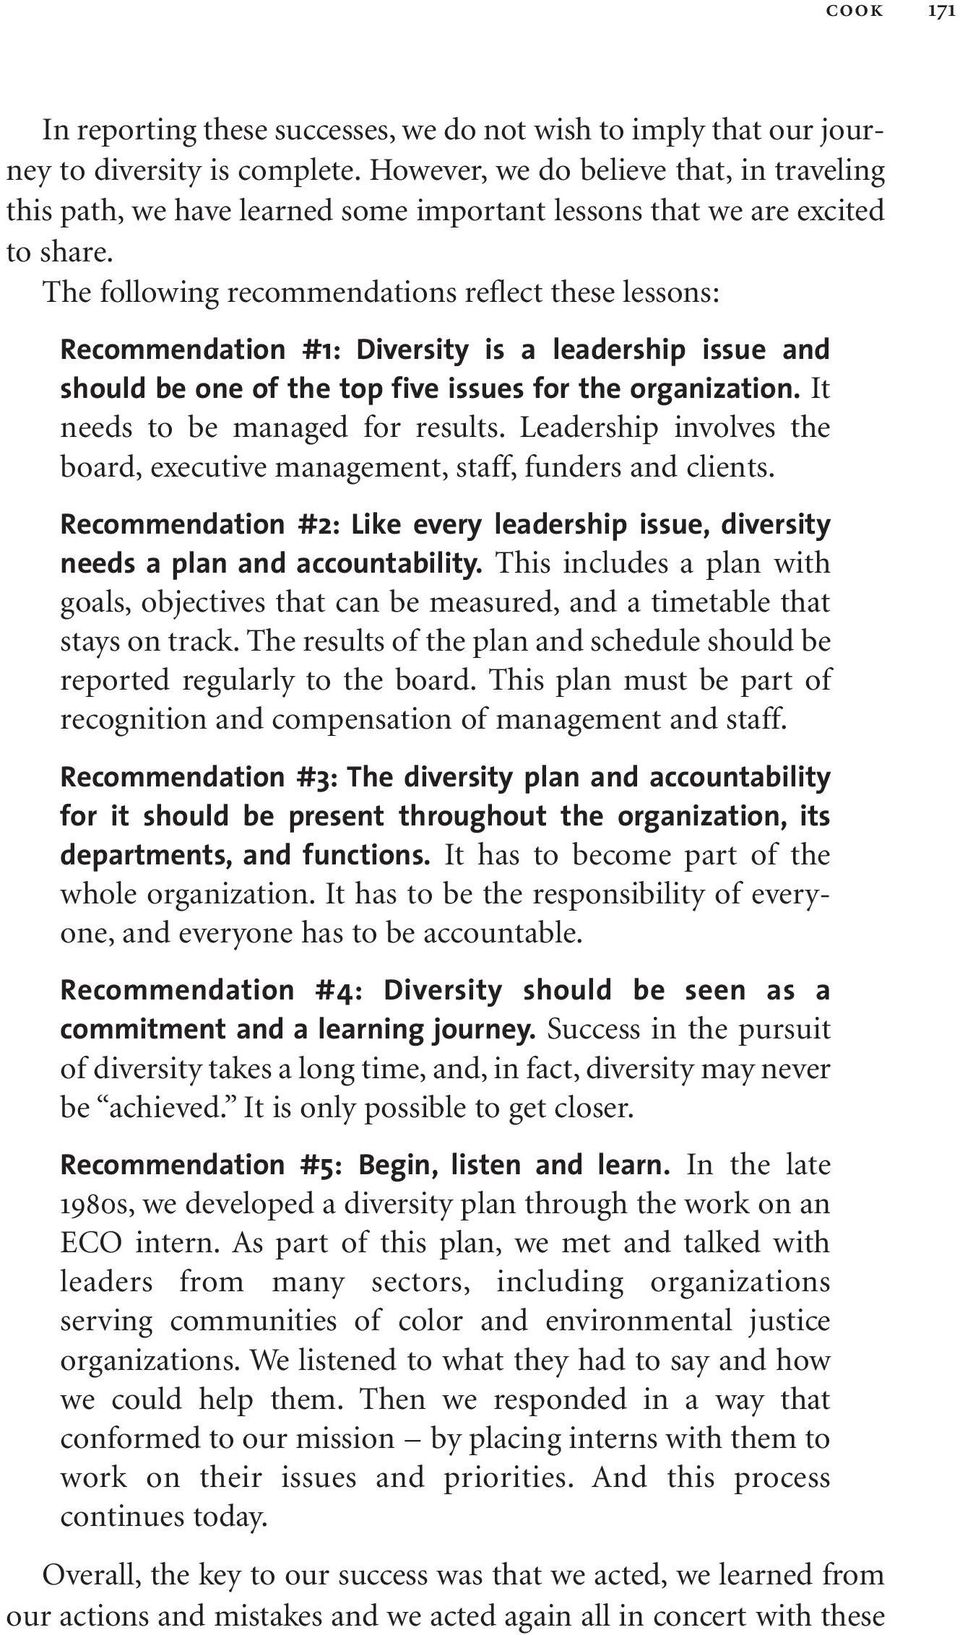 The following recommendations reflect these lessons: Recommendation #1: Diversity is a leadership issue and should be one of the top five issues for the organization.